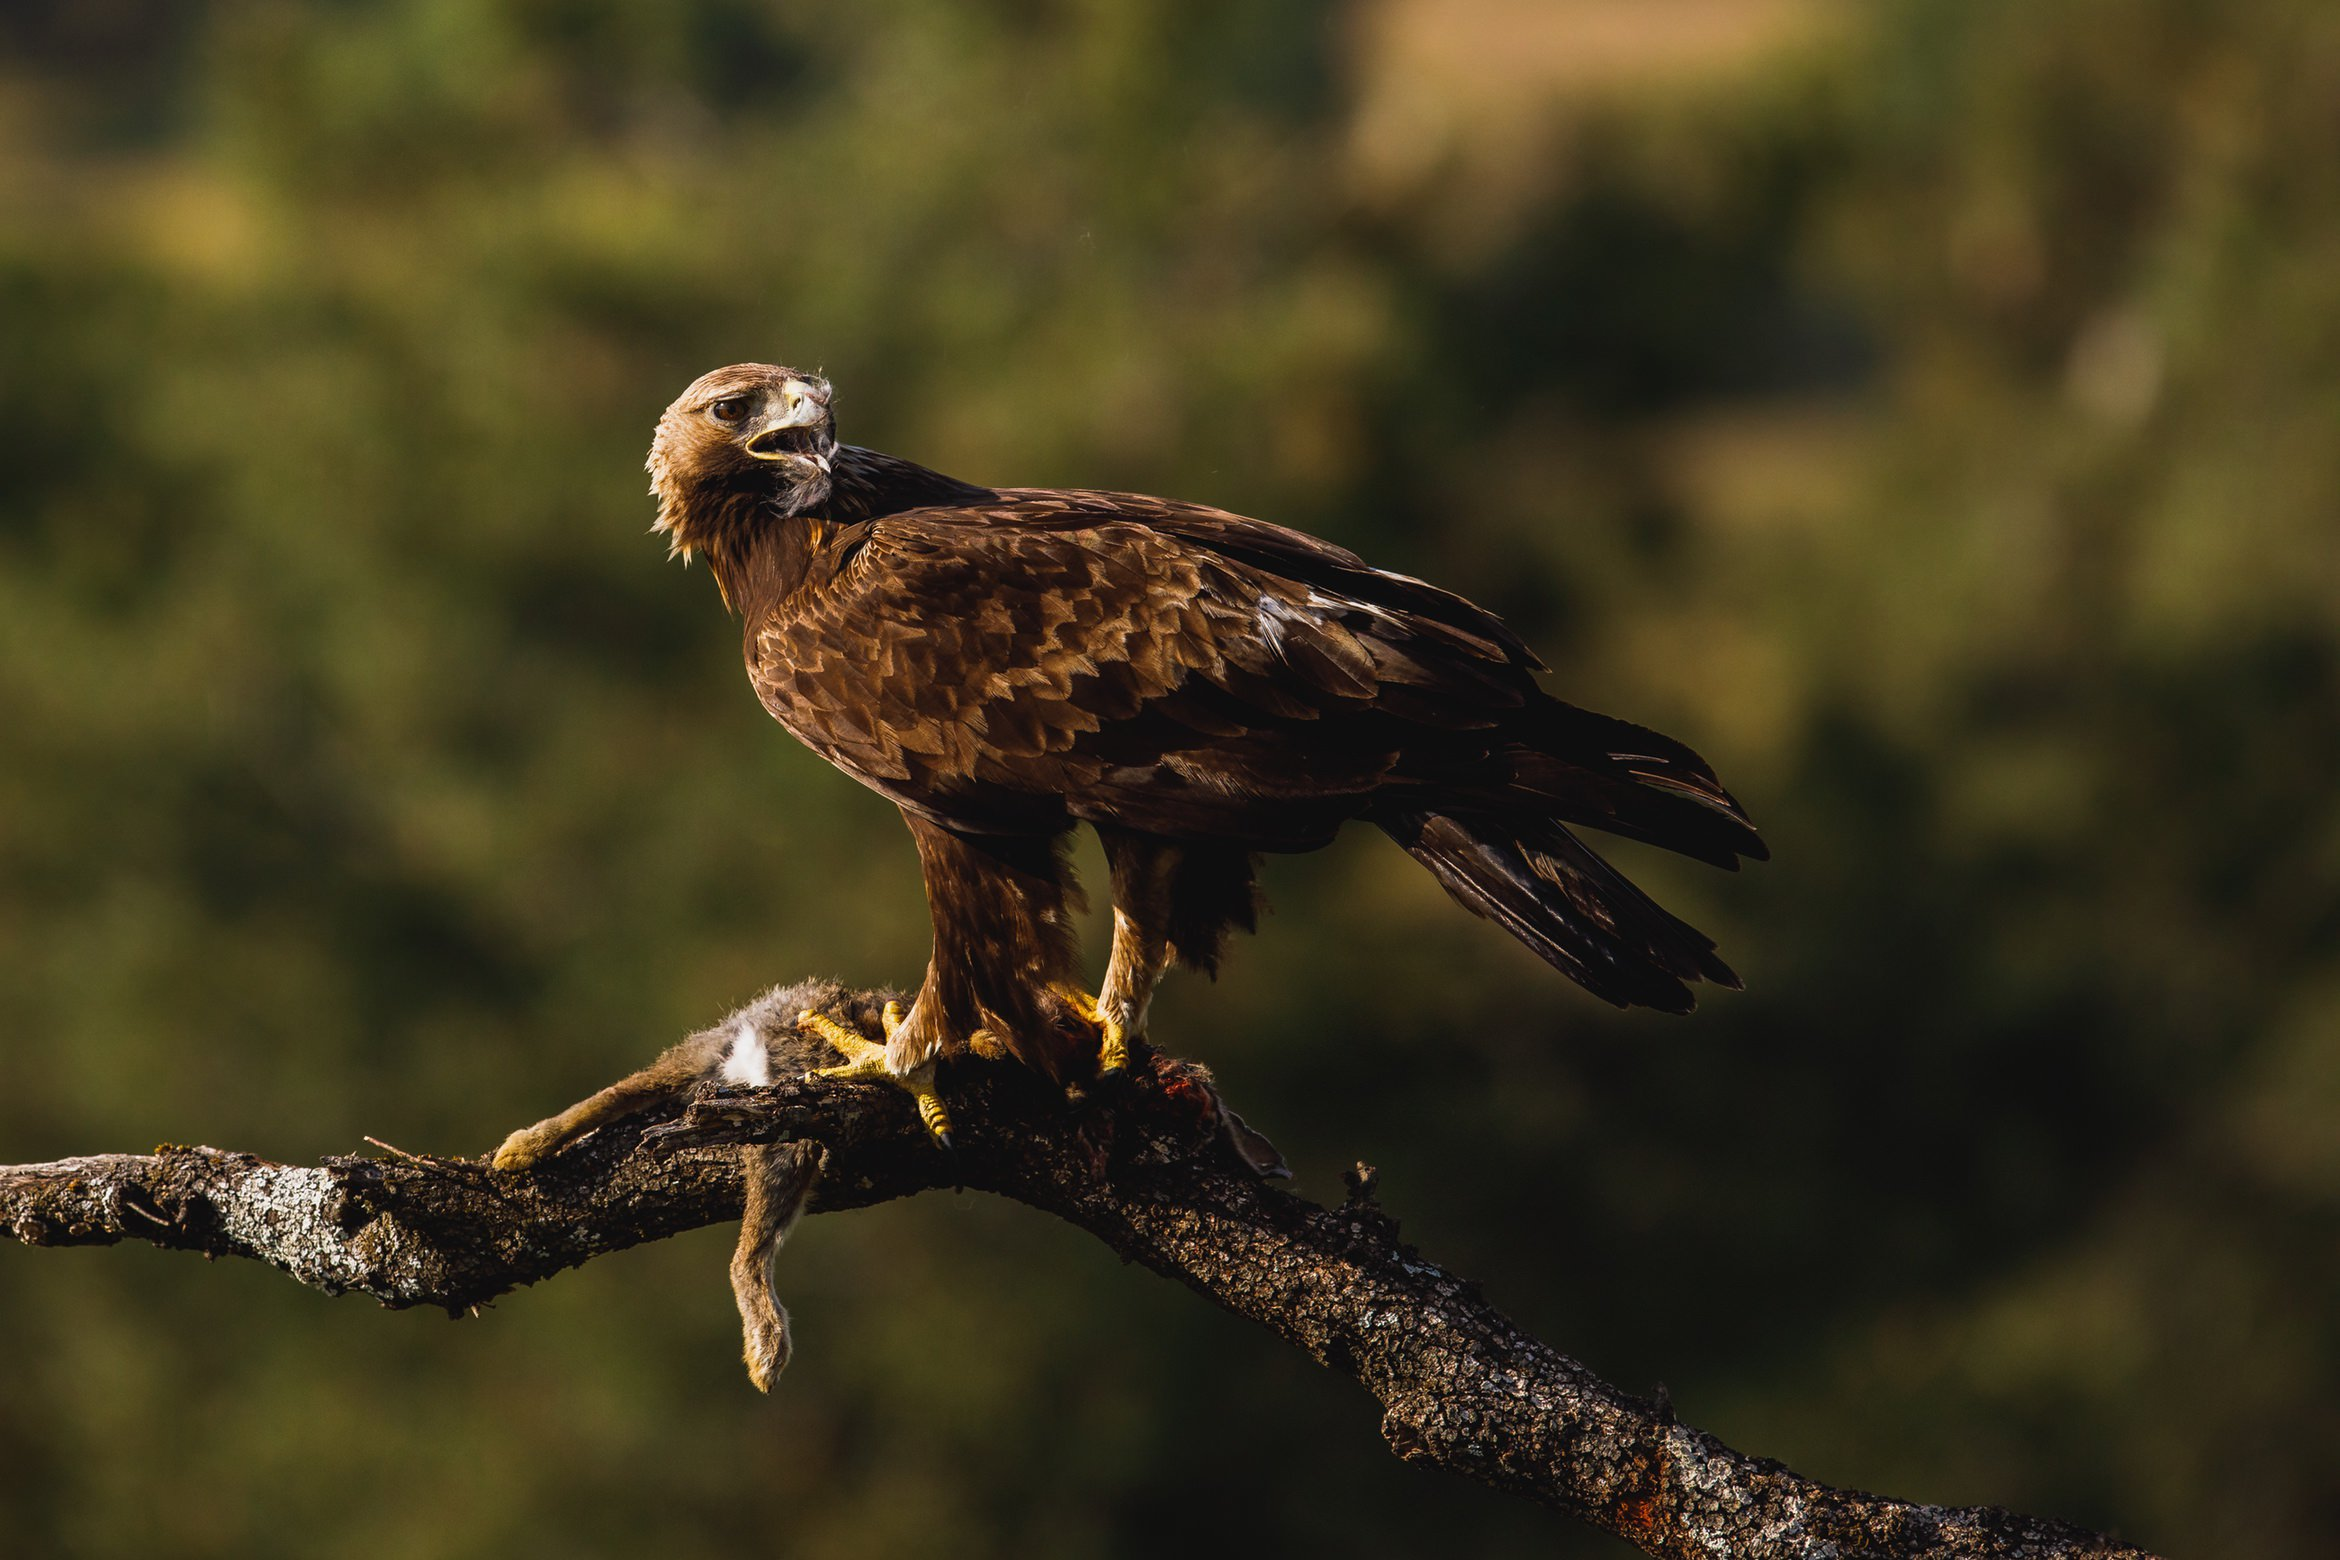 A Golden Eagle Perched Whilst Feeding   Photographed During The NaturesLens Golden Eagles & Raptors Of Spain WIldlife Photography Holiday